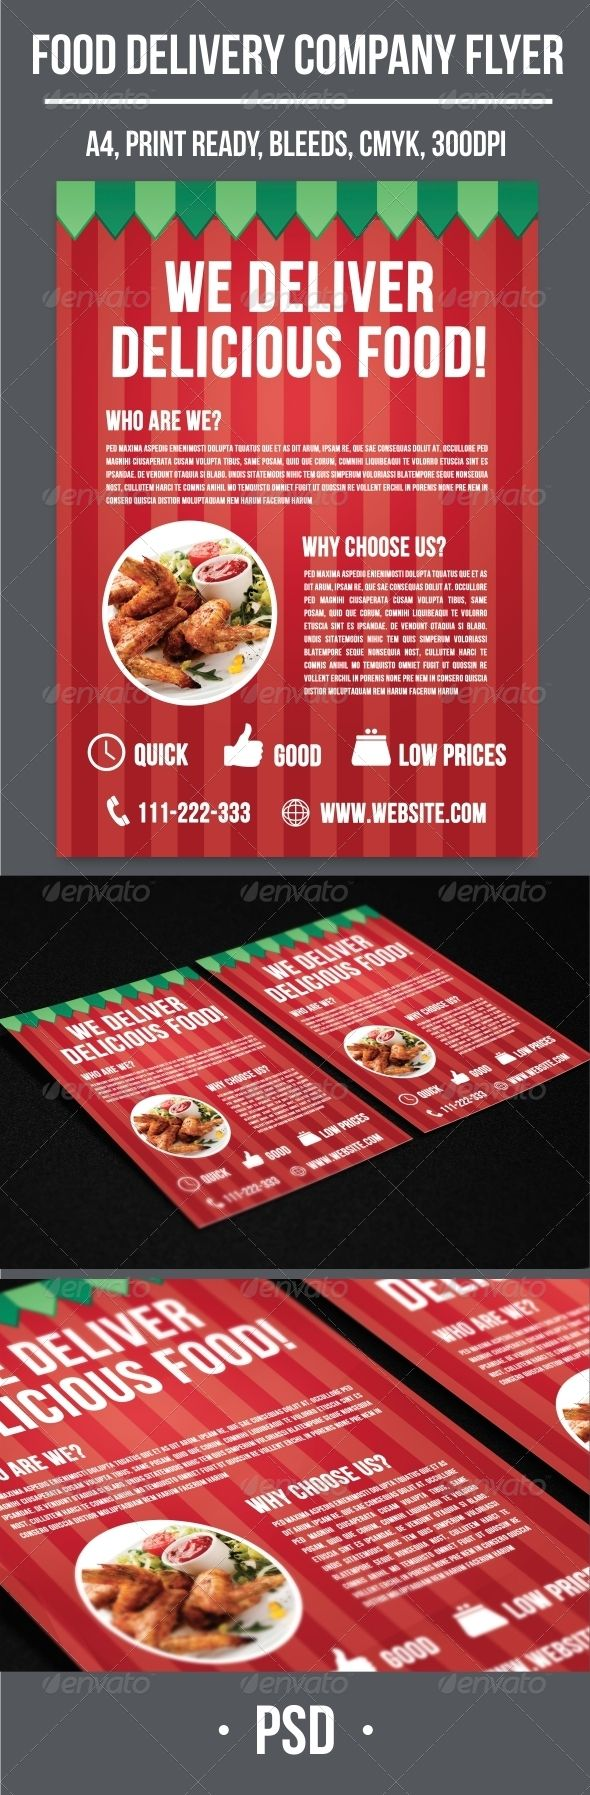 Food Delivery Company Flyer | Find fonts